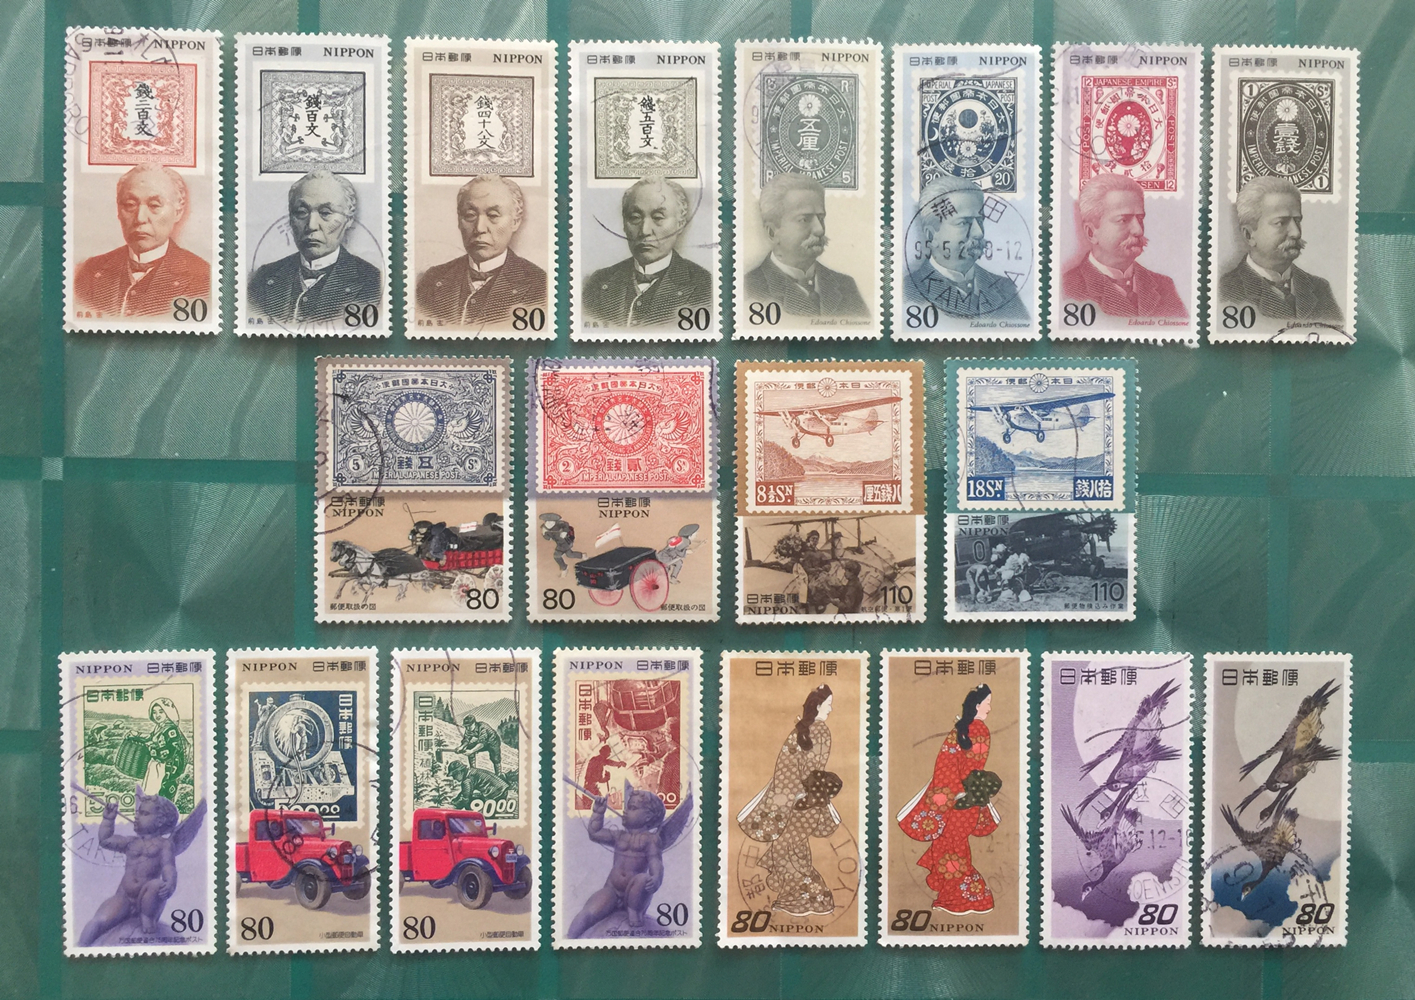 20Pcs/Set Japan Post Vintage Stamps on Stamps Used Post Marked Postage Stamps for Collecting C1458-C1477(China)